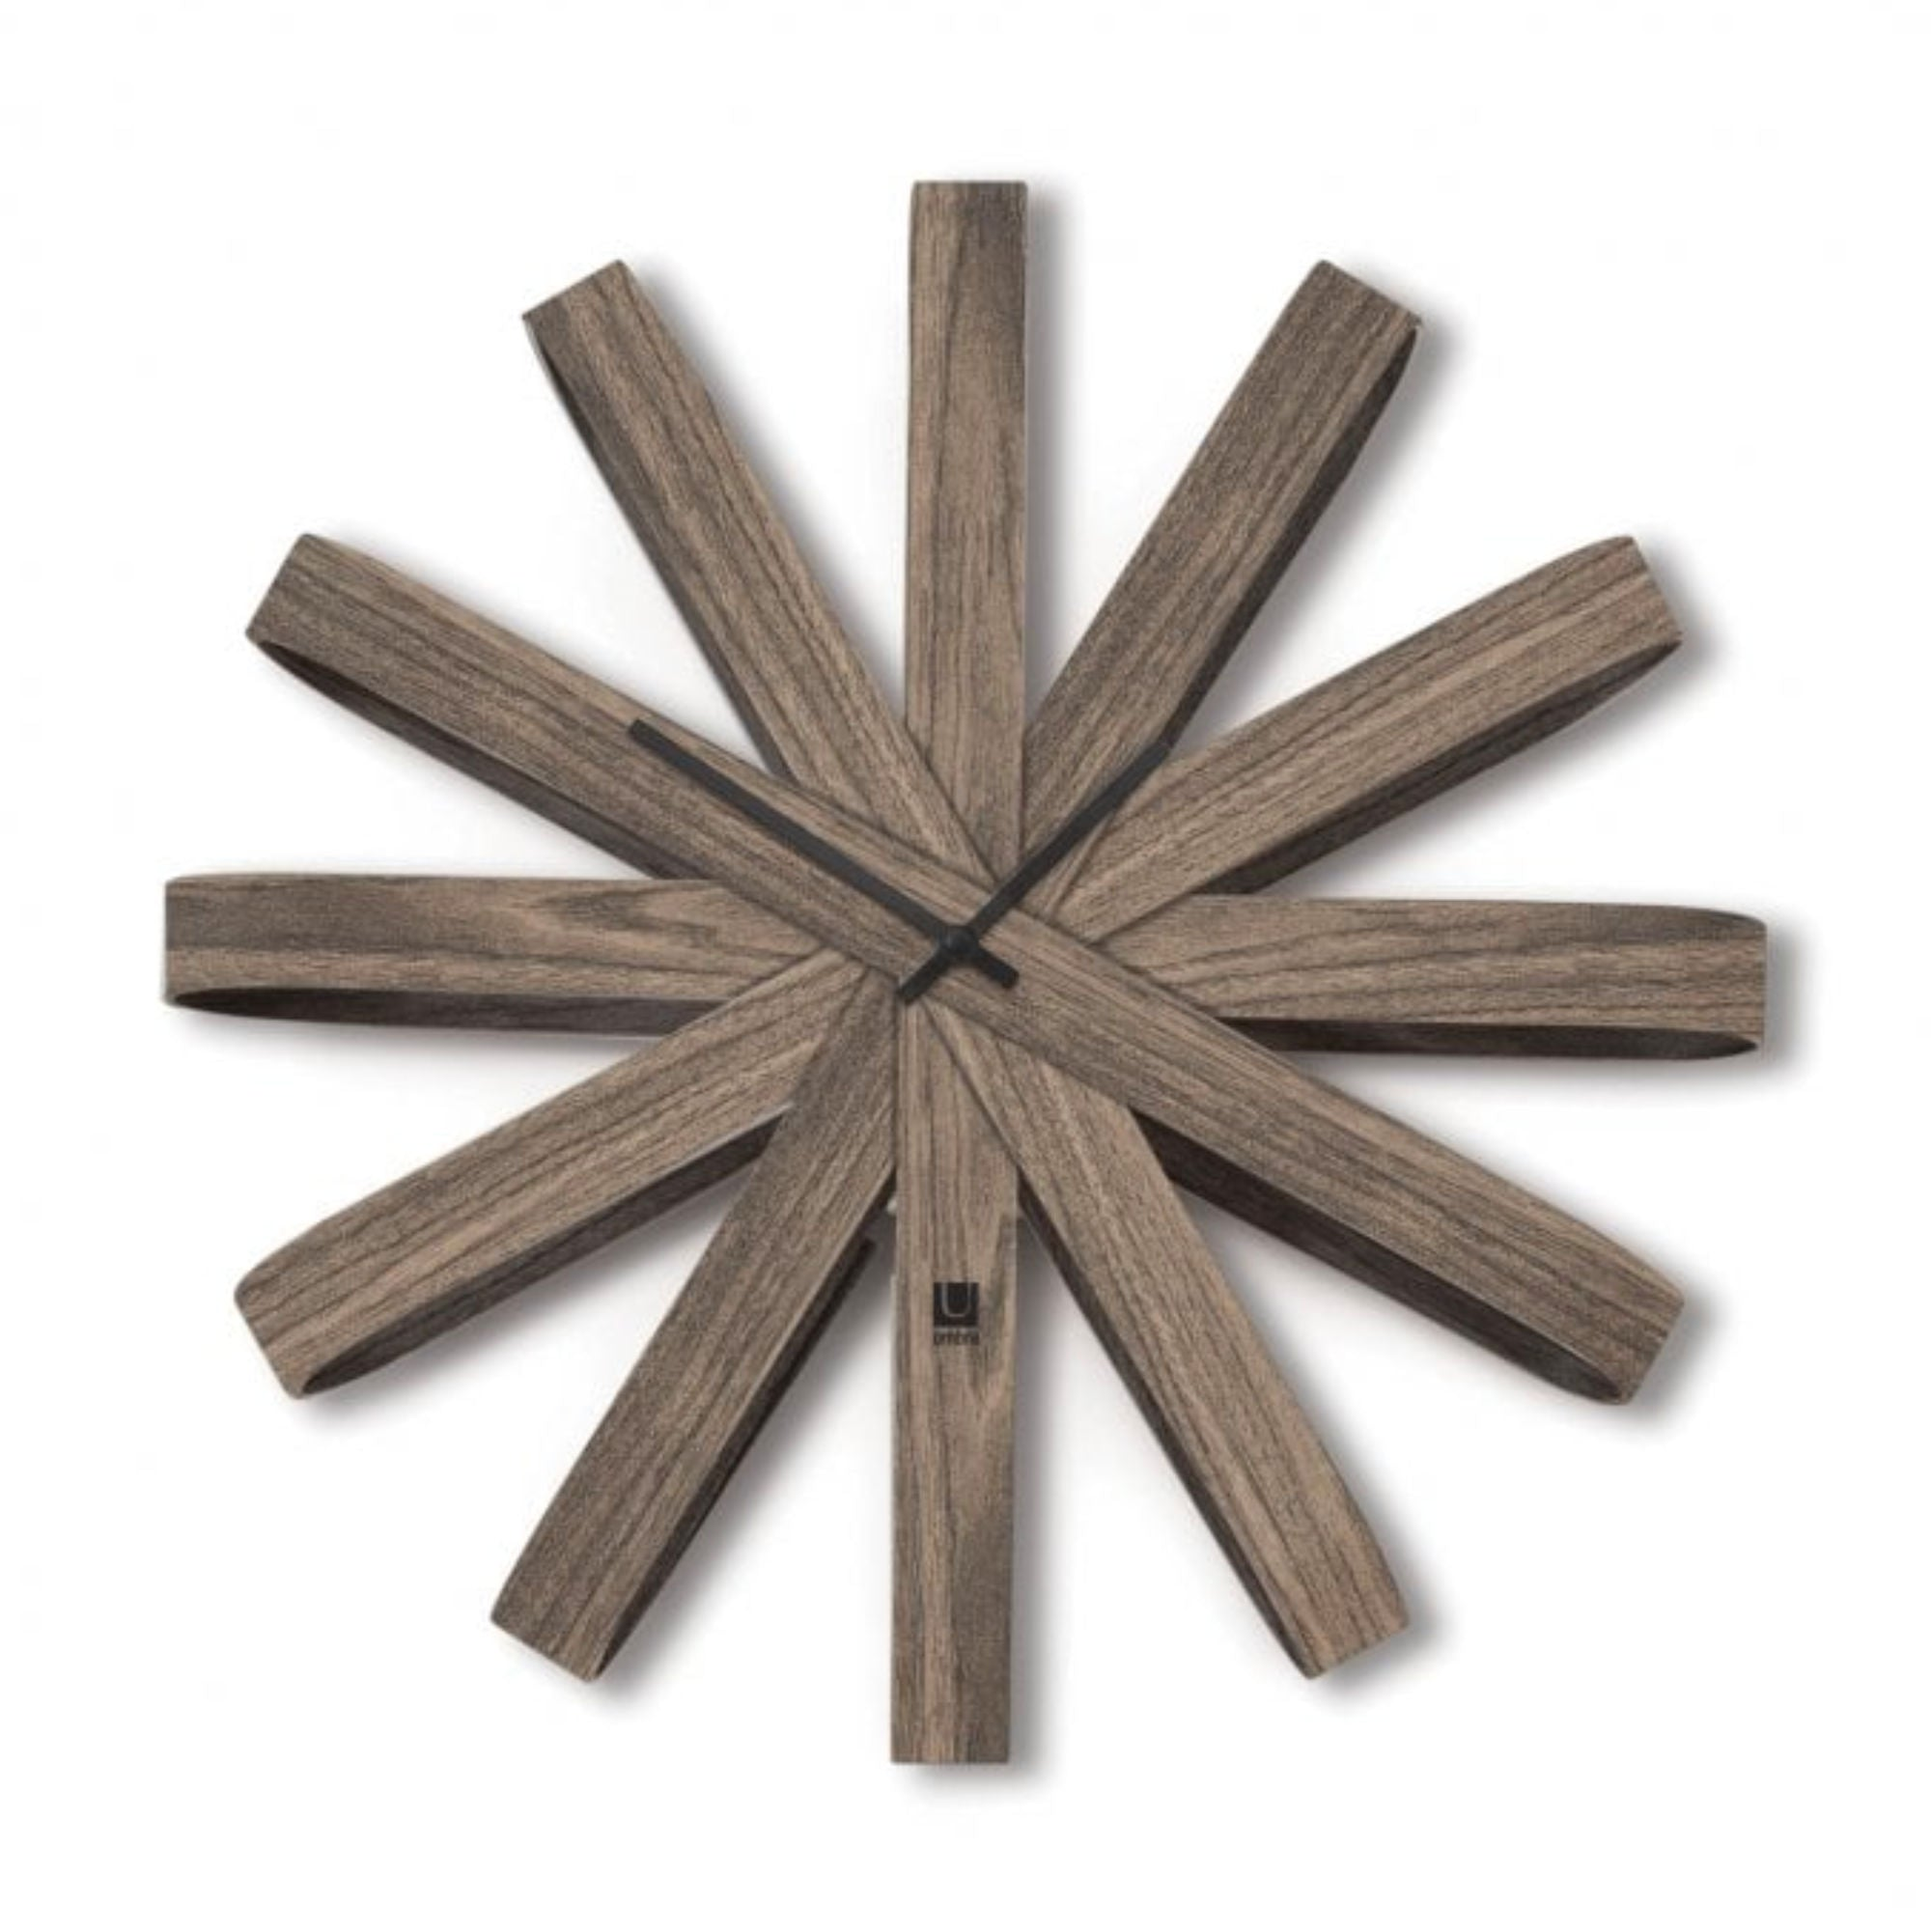 Umbra Ribbon wall clock, walnut